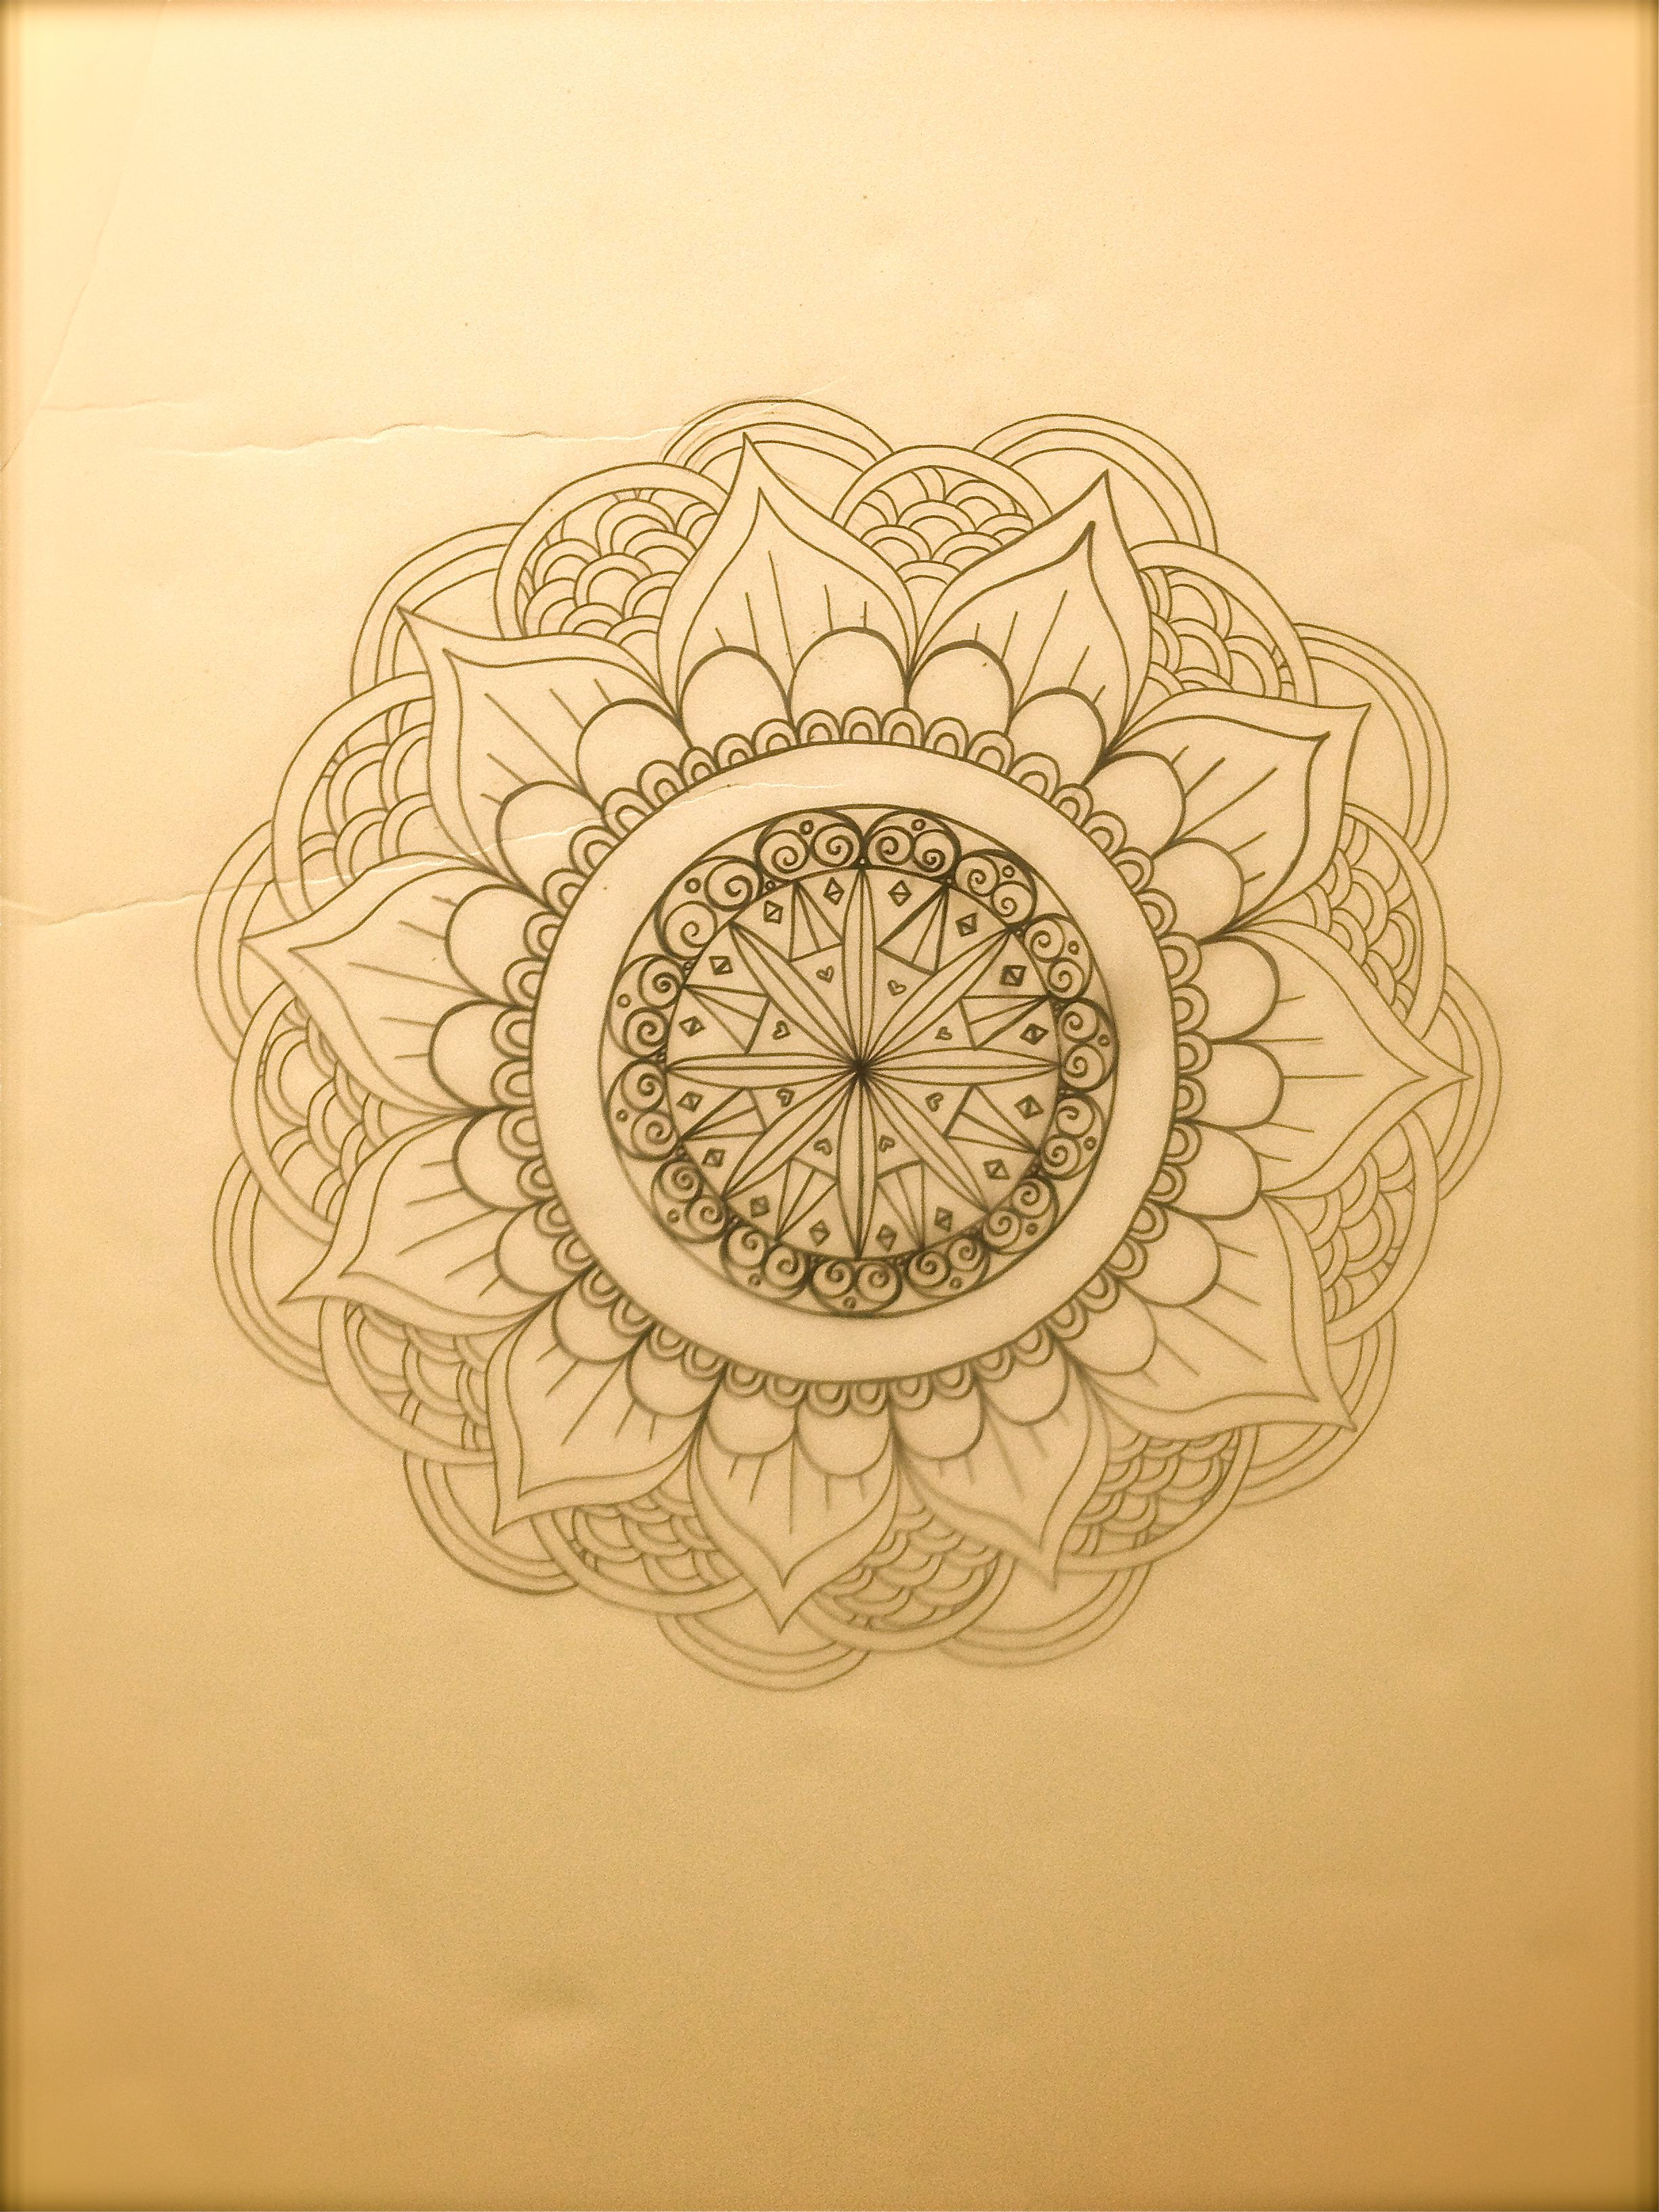 The Mandala Is A Buddhist Symbol Representing The Universe My